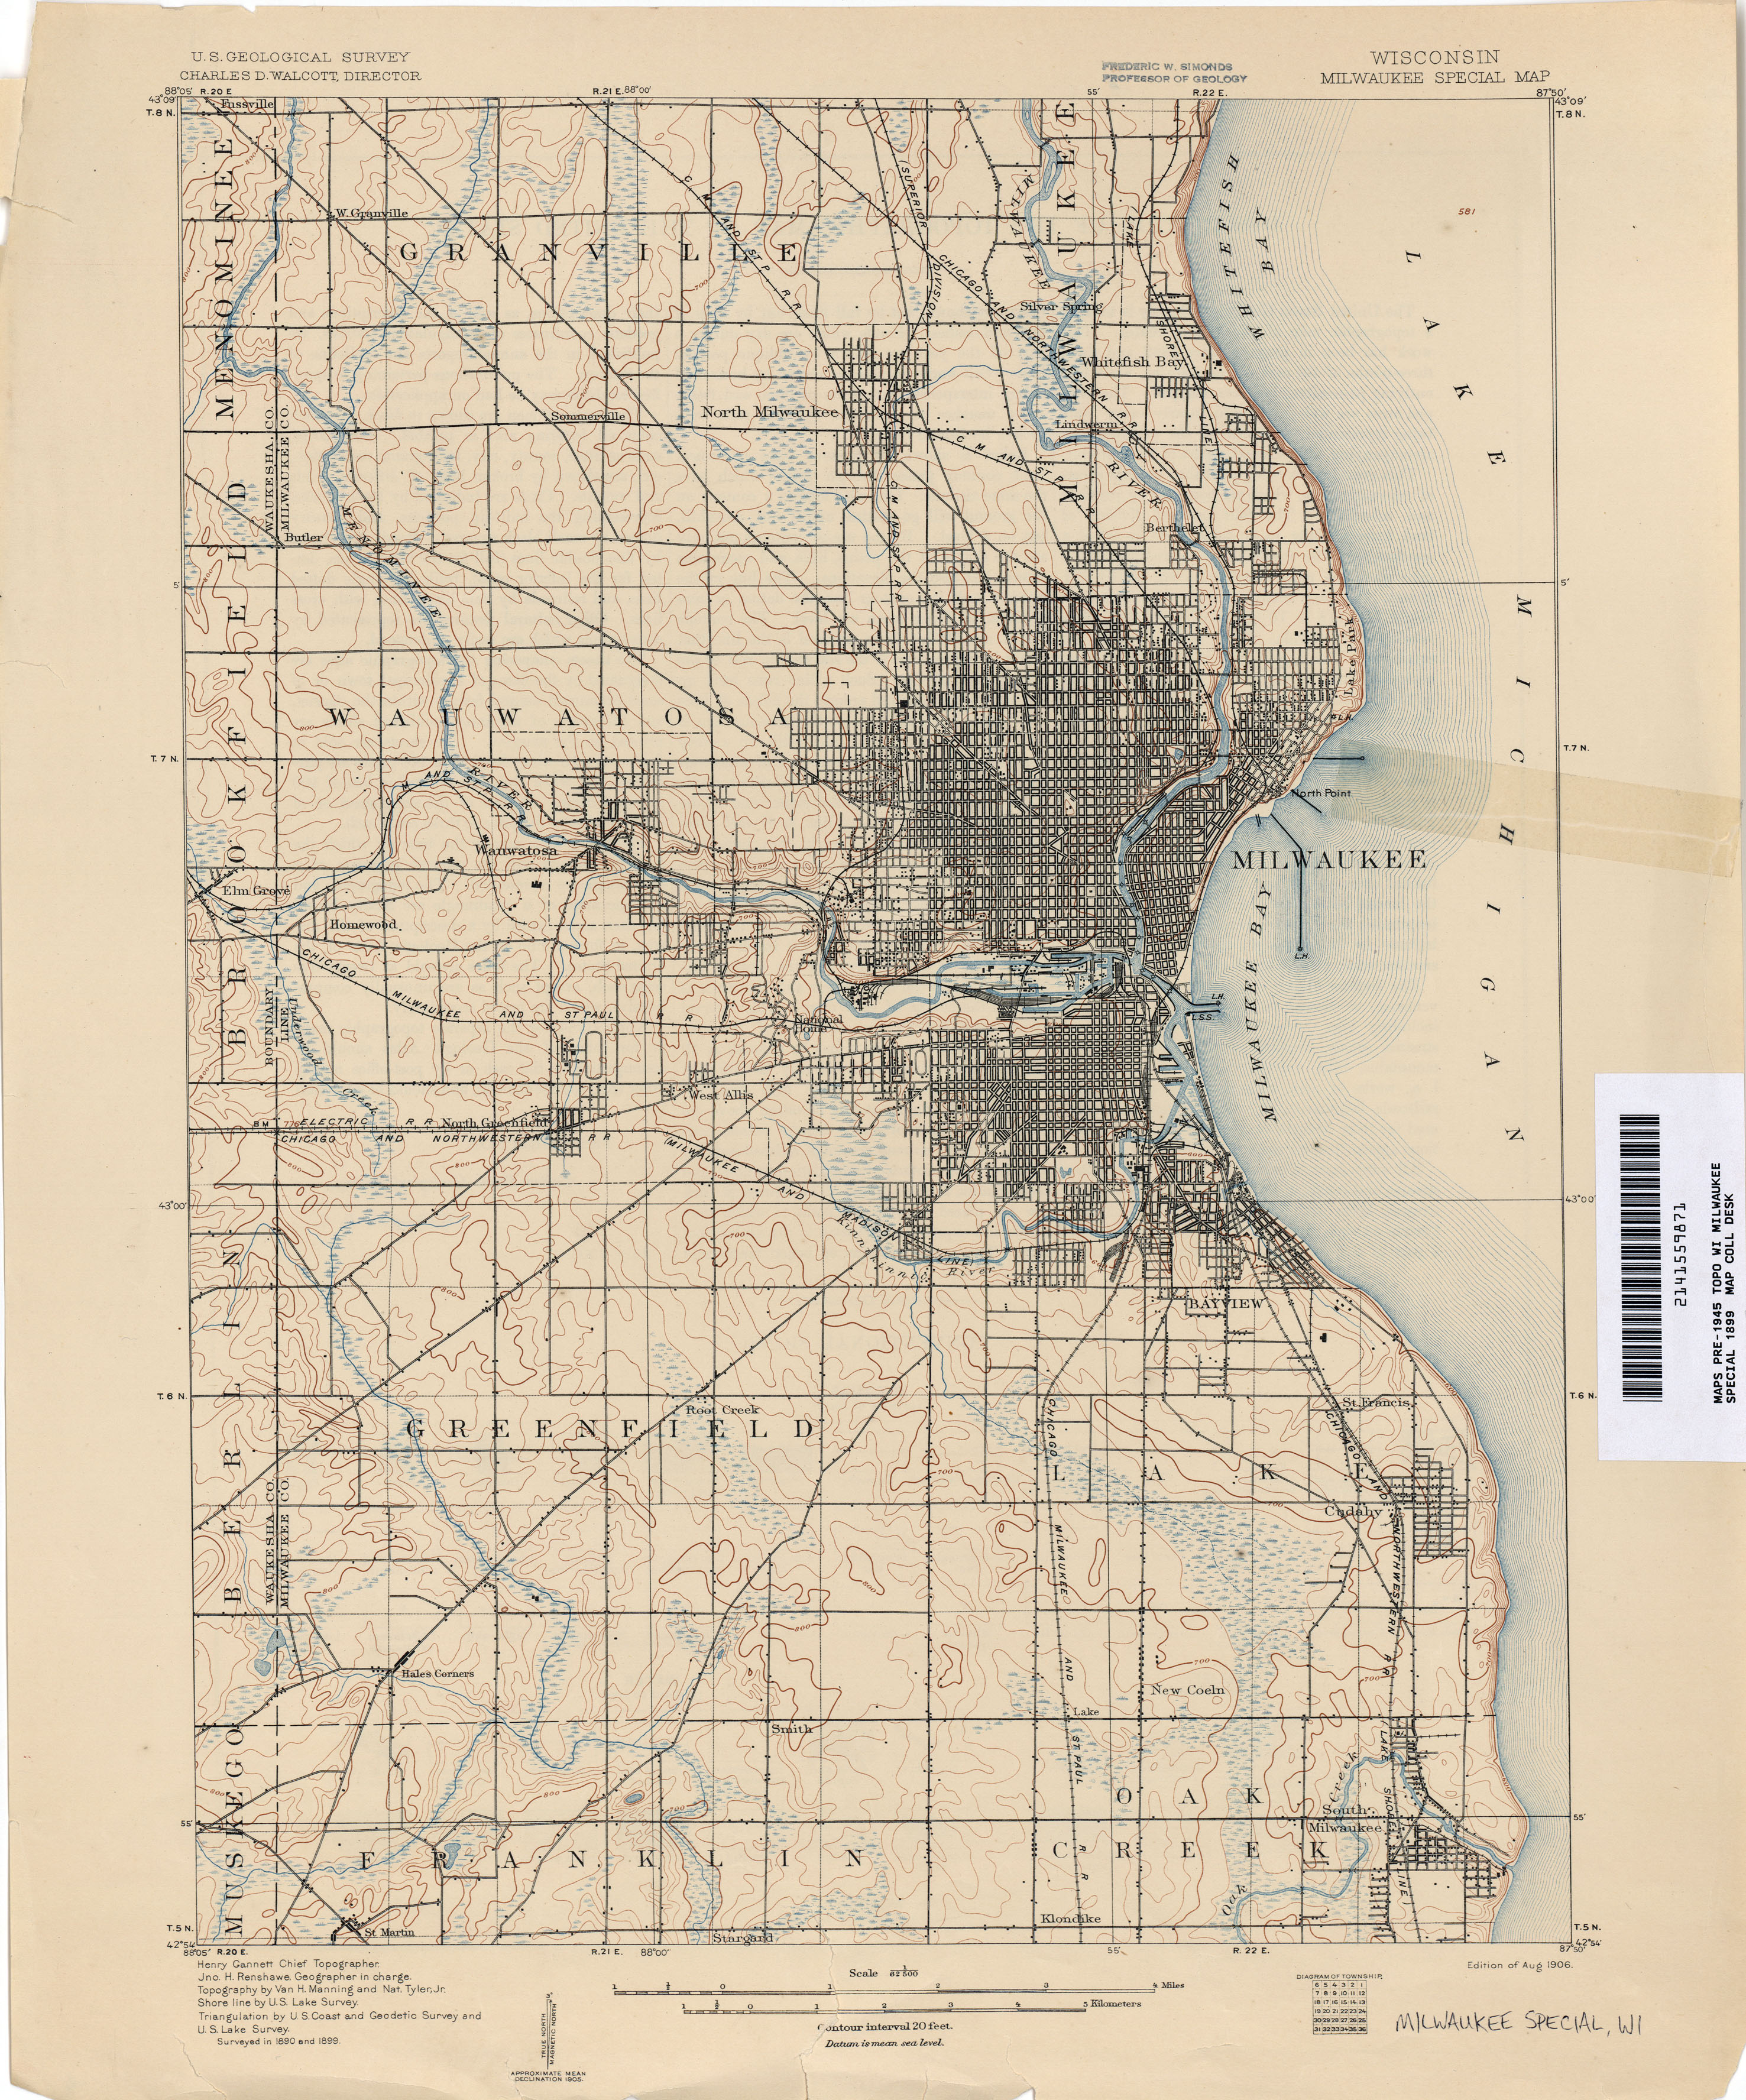 Historical Topographic Maps - Perry-Castañeda Map Collection ... on map of uranus, map of cold mountain, map of jfk, map of luna, map of the great war, map of brazil, map of greed, map of italy, map of police, map of iran, map of new york, new york, map of barbara, map of 49th parallel, map of life is beautiful, map of wolf, map of gettysburg, map of apocalypse now, map of network, map of zulu,